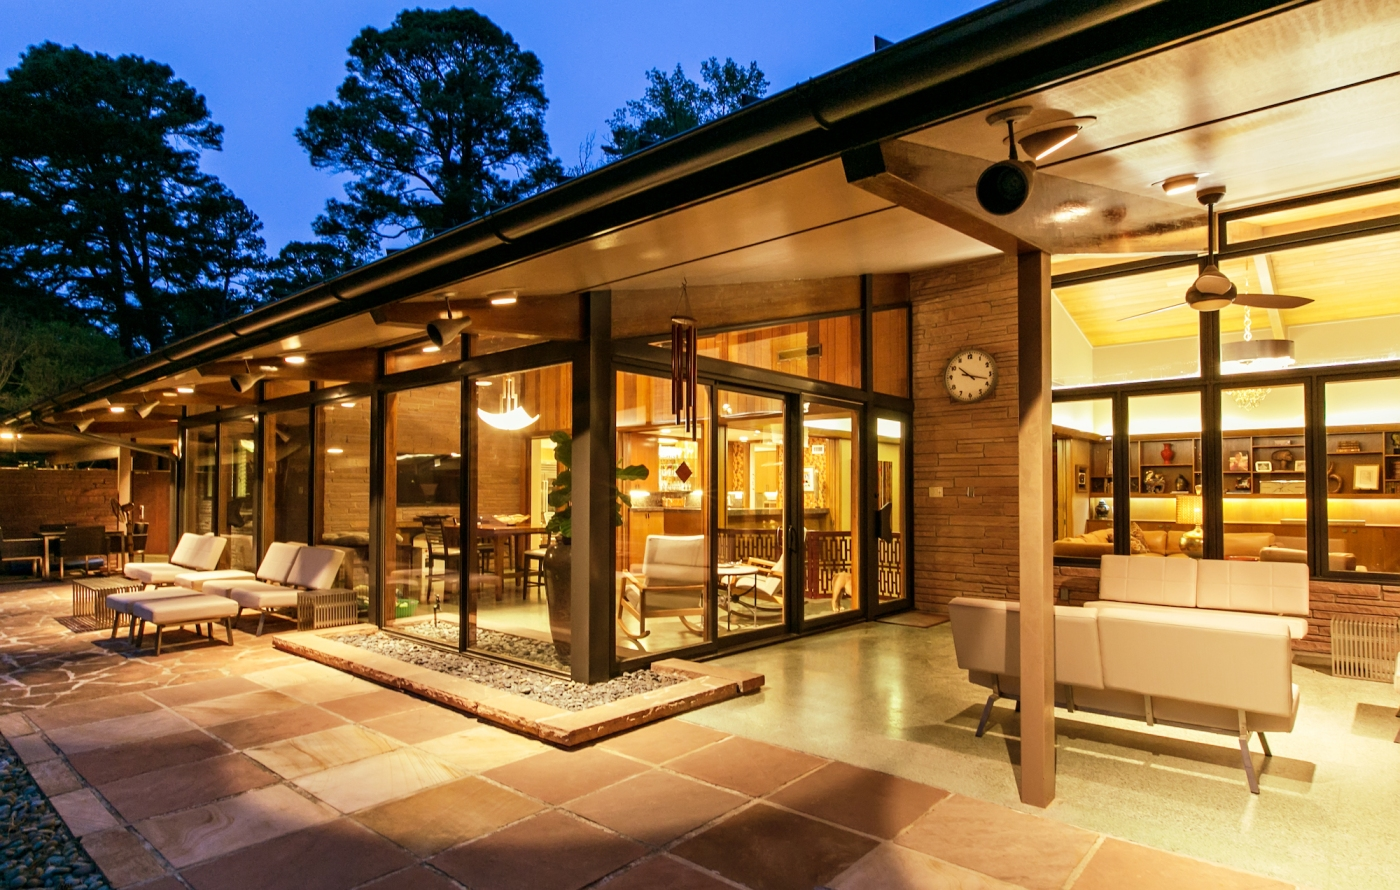 Rear exterior of mid century modern house with large Marvin windows and doors